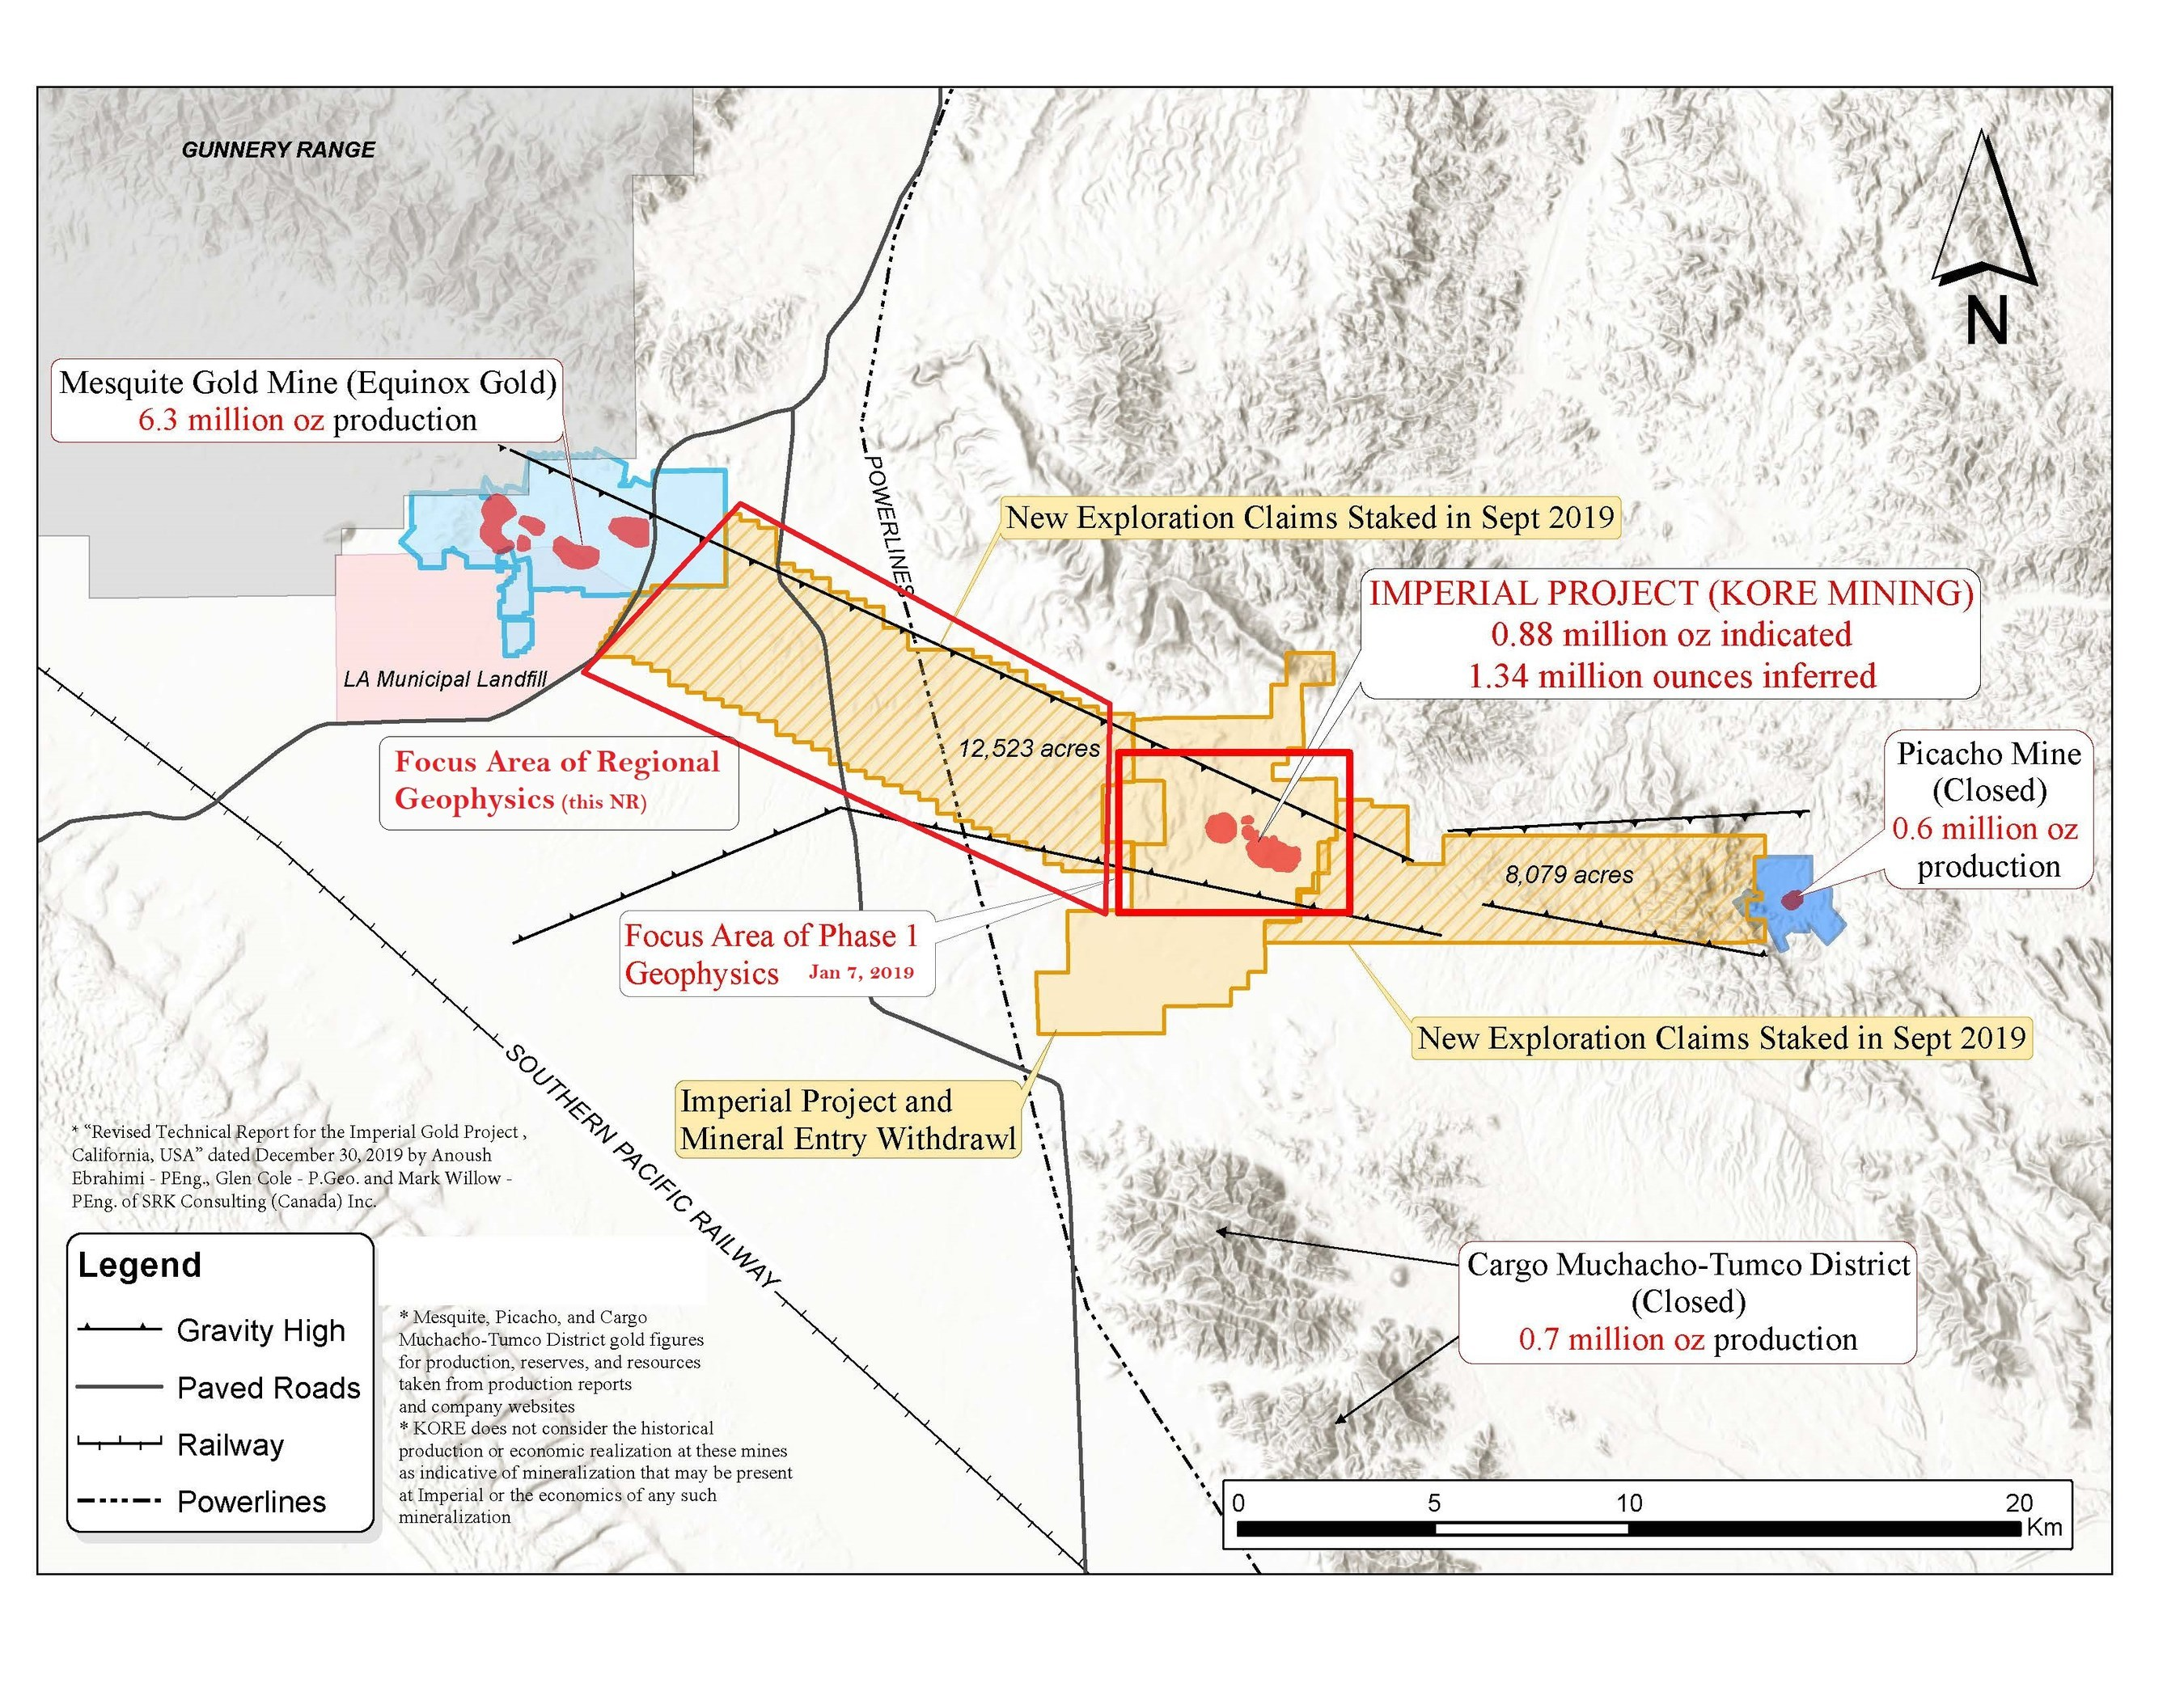 FIGURE 3: IMPERIAL GOLD PROJECT CLAIMS MAP (CNW Group/Kore Mining)